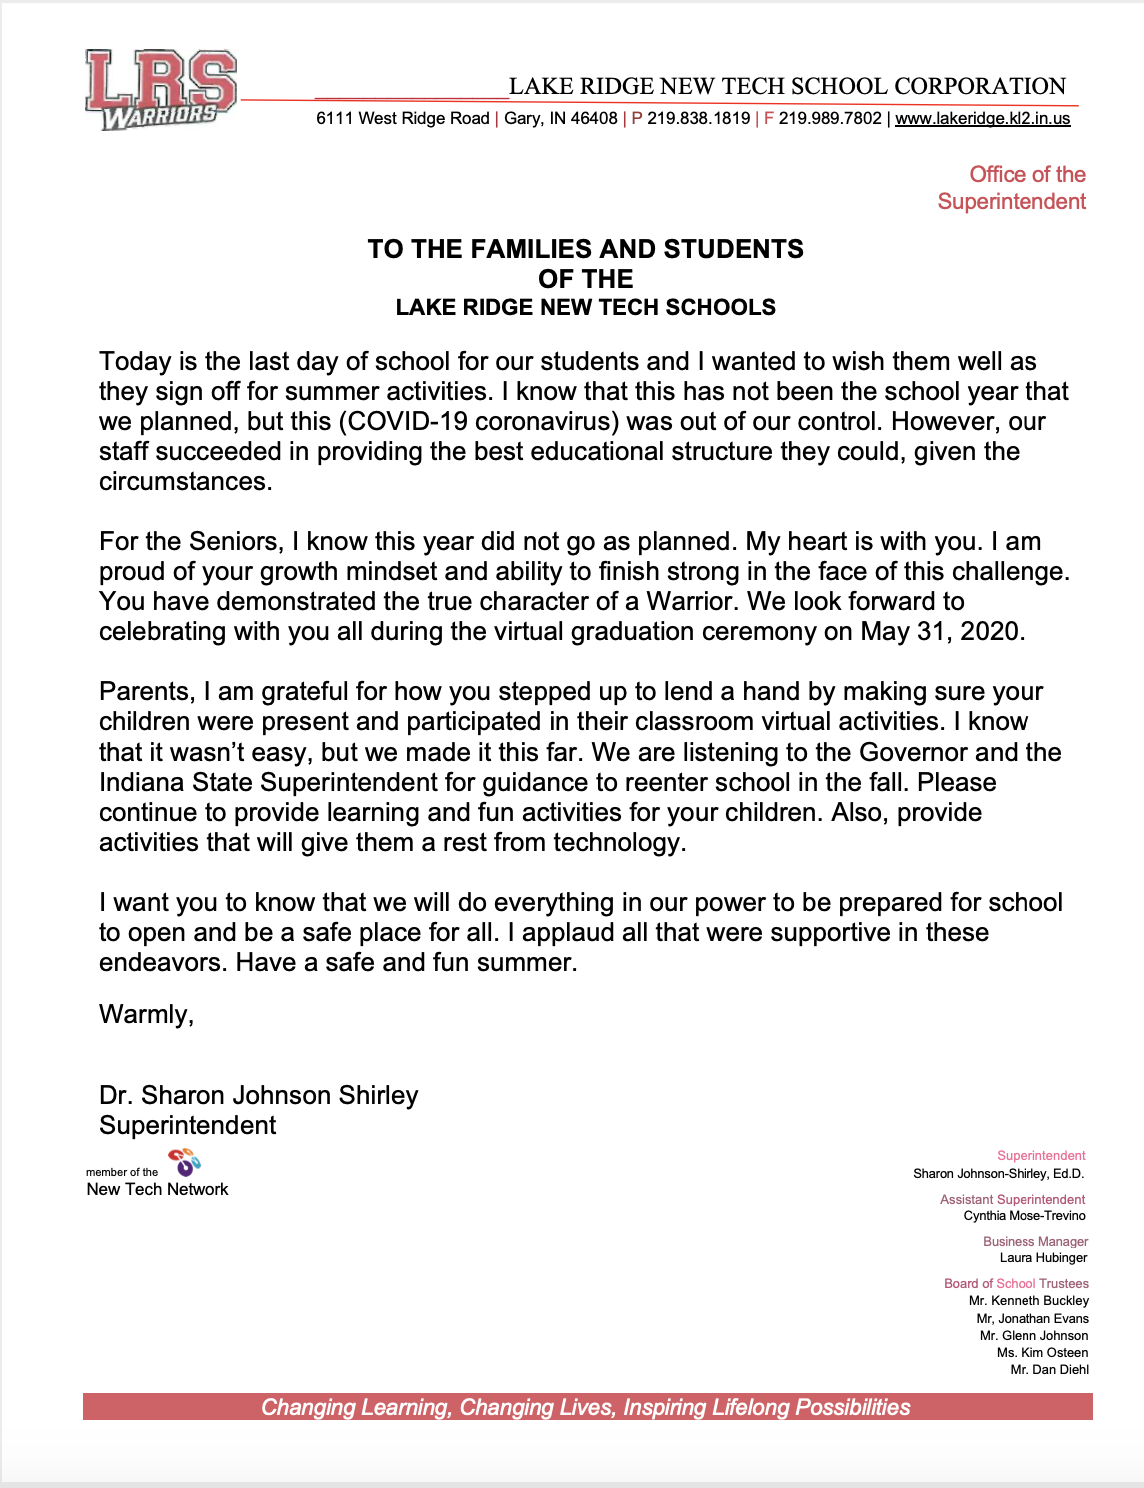 Superintendents Letter 5-15-2020